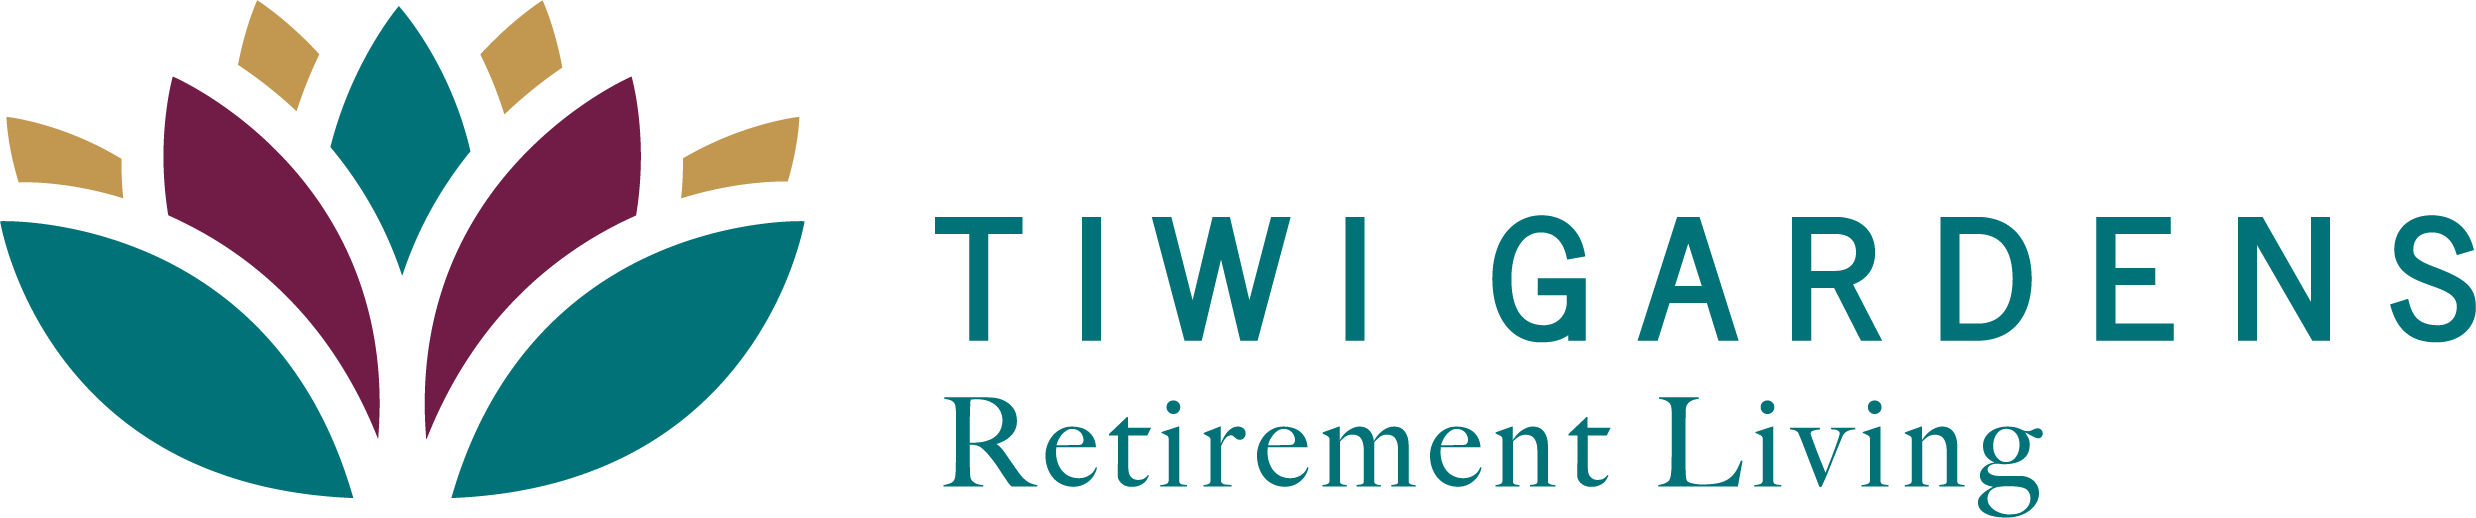 tiwi gardens retirement living